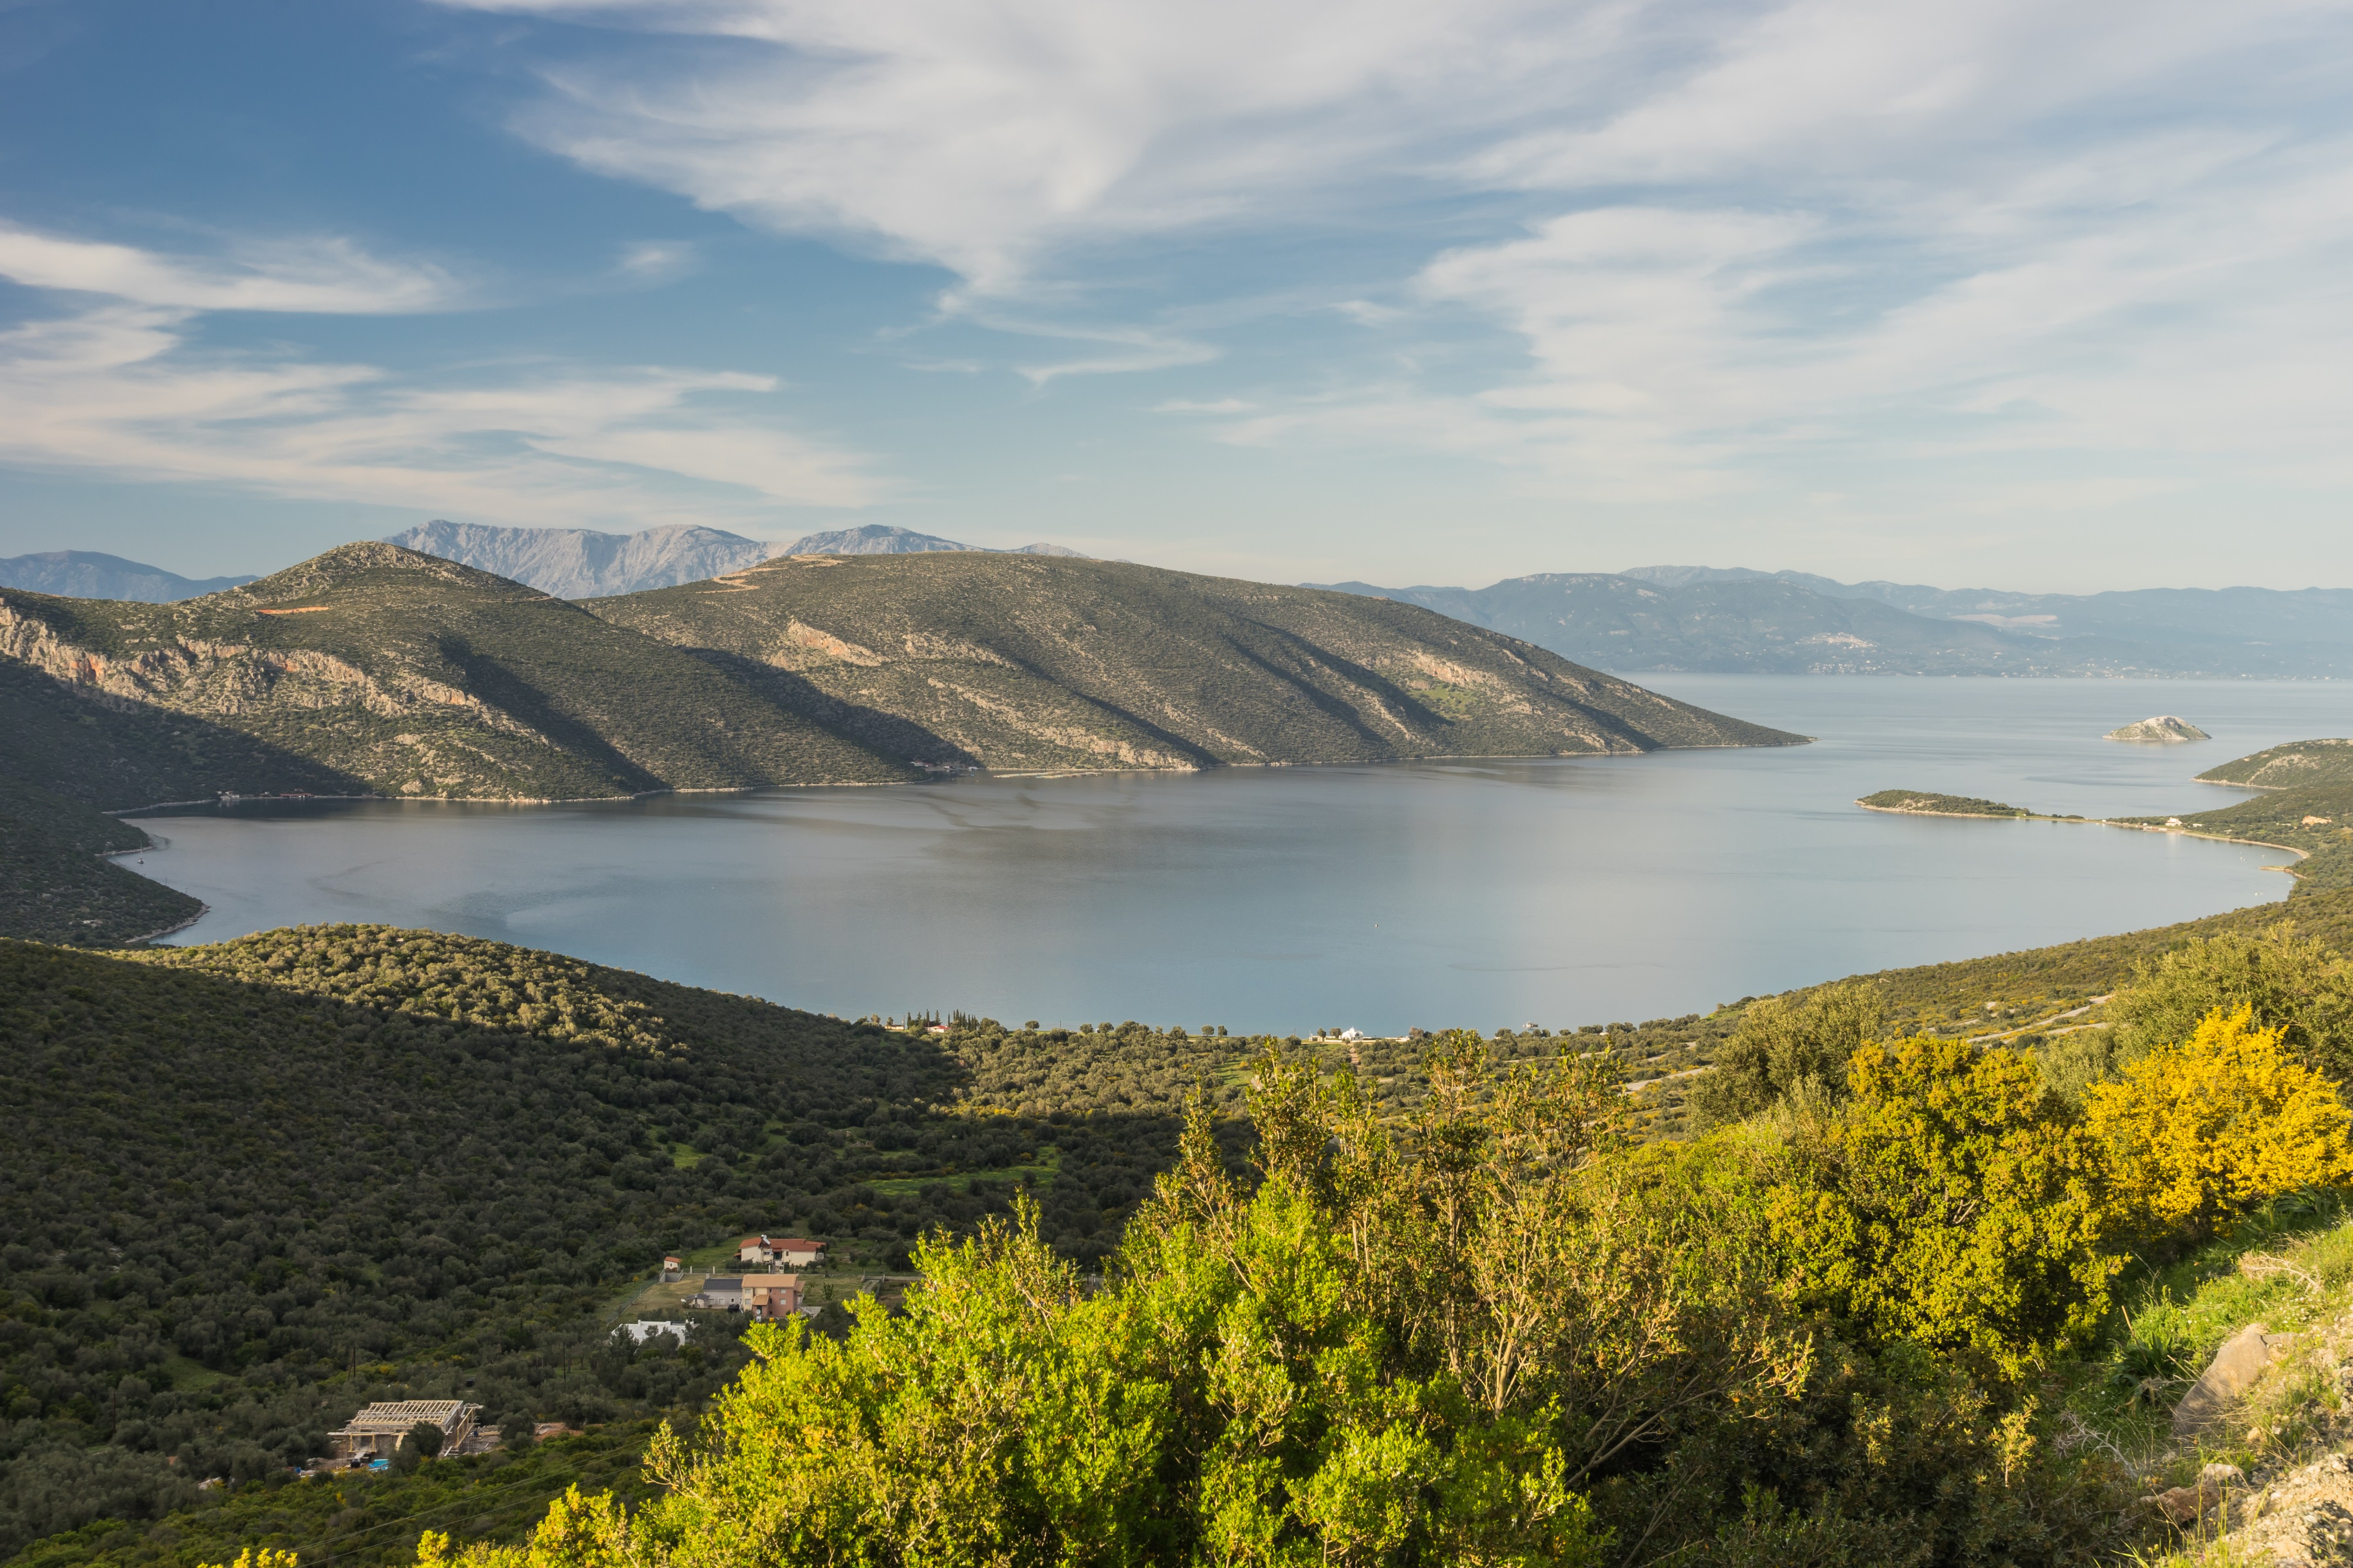 Bay of Skroponeria, Boeotia, central Greece